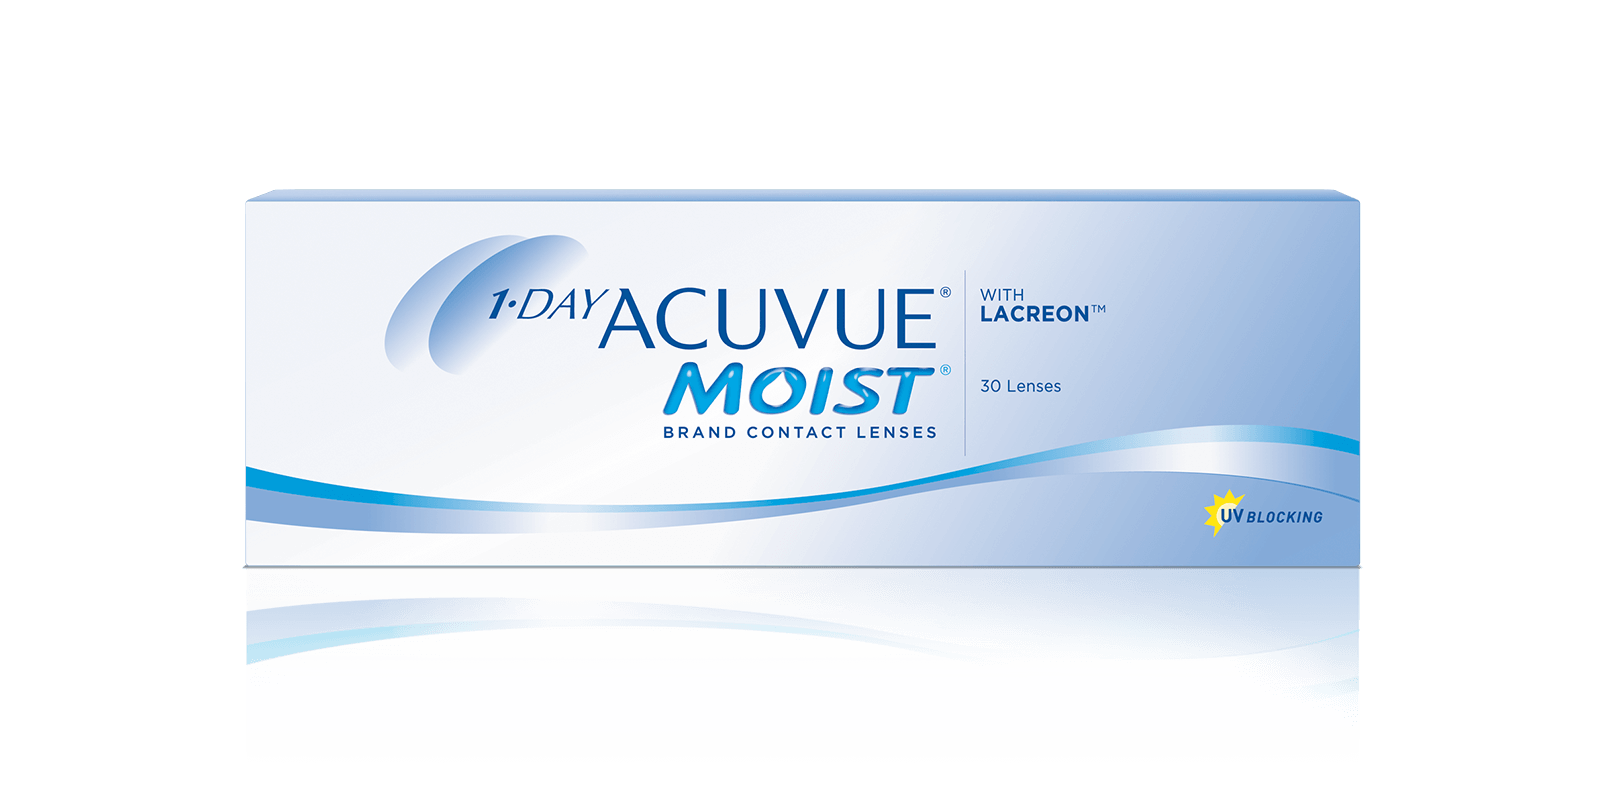 1-Day Acuvue® Moist con LACREON™